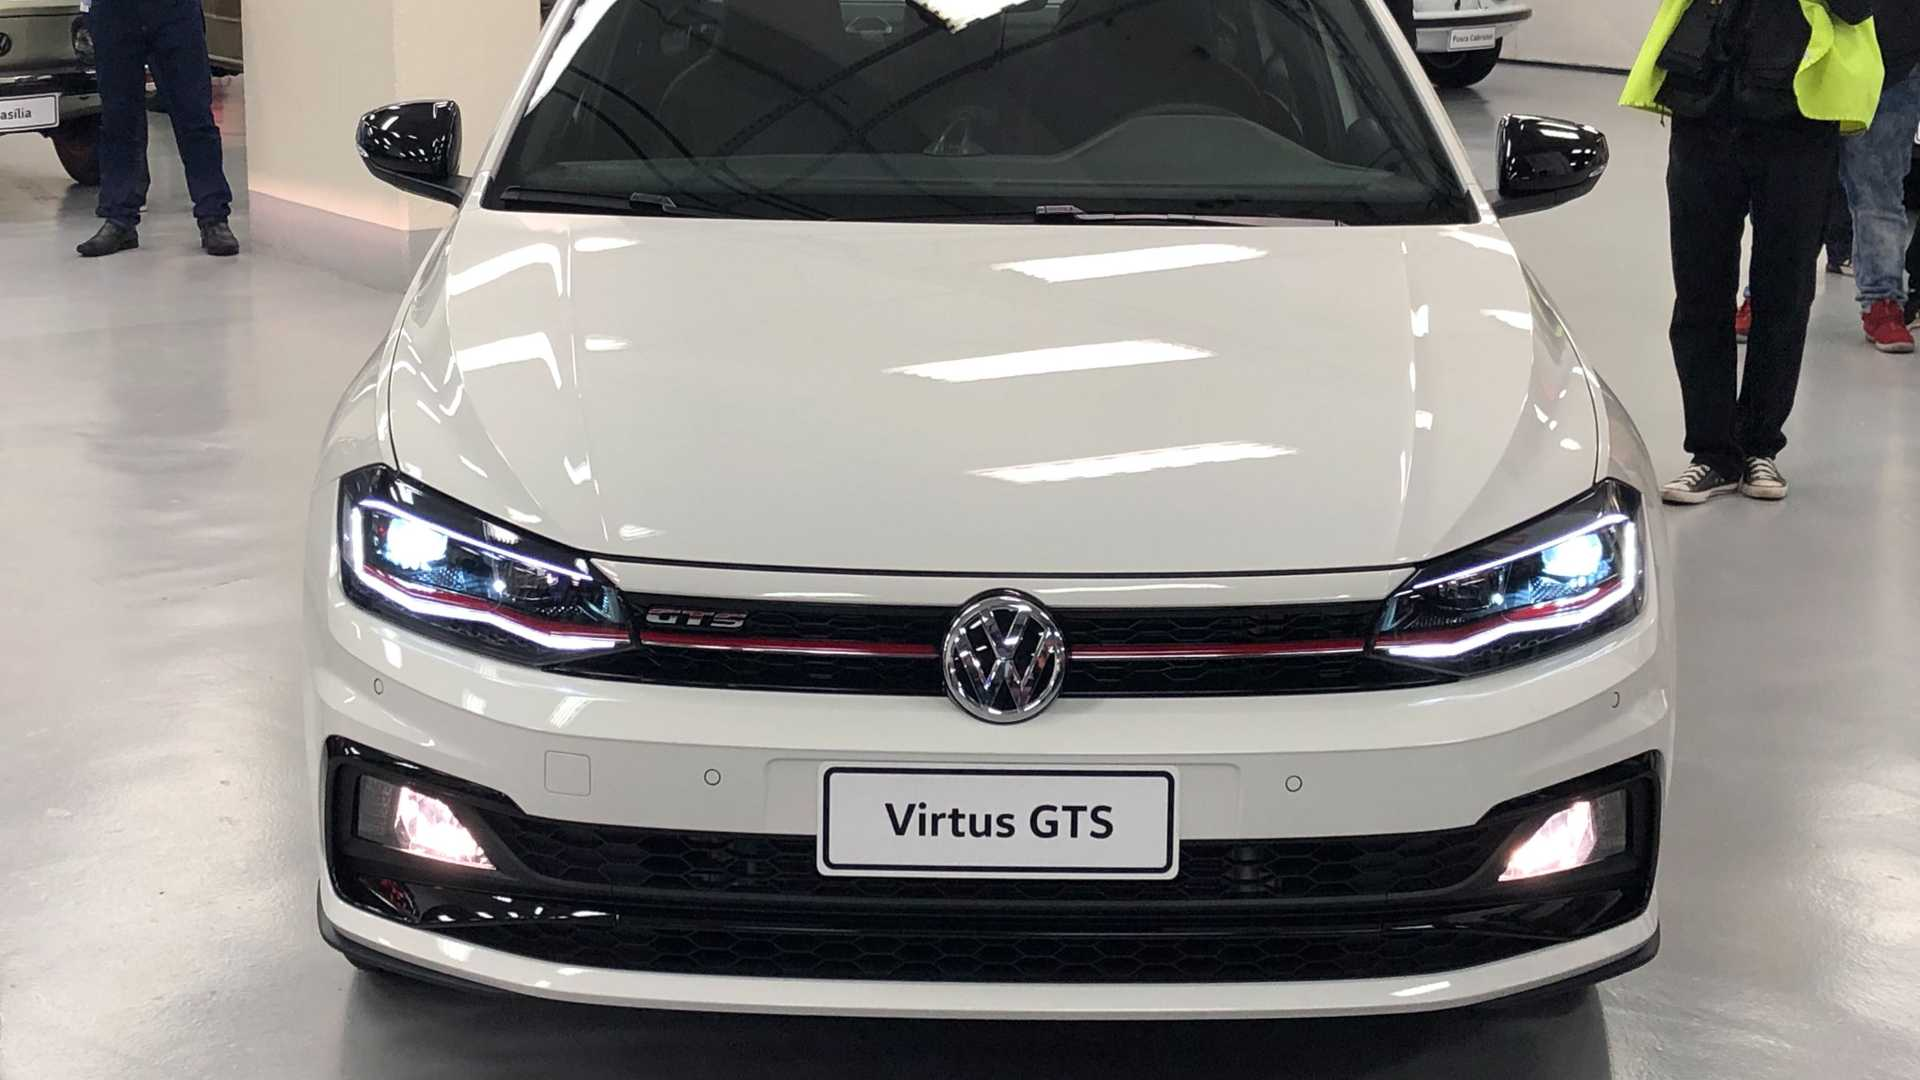 Polo GTS e Virtus GTS